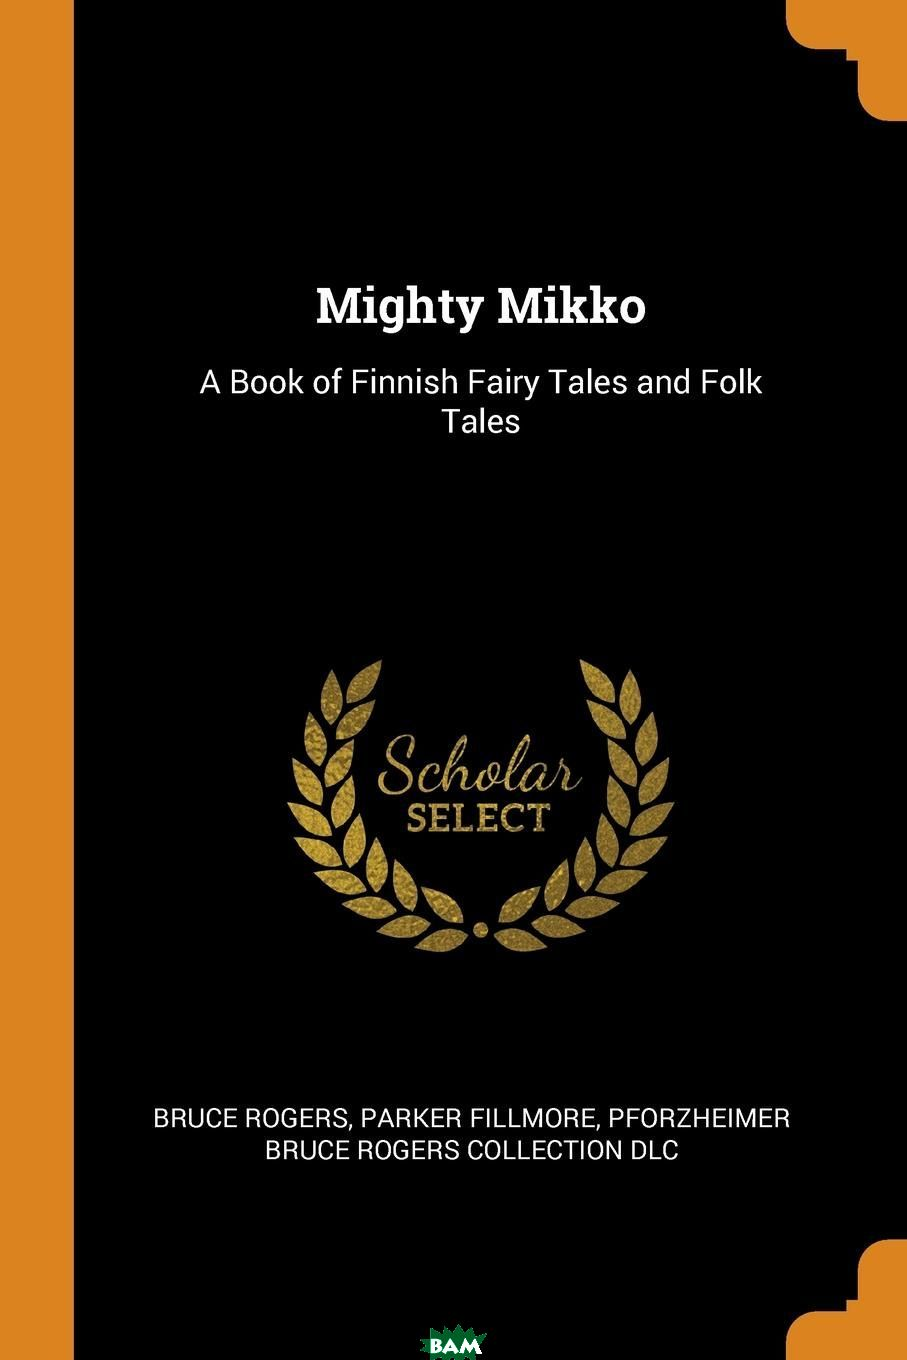 Купить Mighty Mikko. A Book of Finnish Fairy Tales and Folk Tales, Bruce Rogers, Parker Fillmore, Pforzheimer Bruce Rogers Collection DLC, 9780353027190